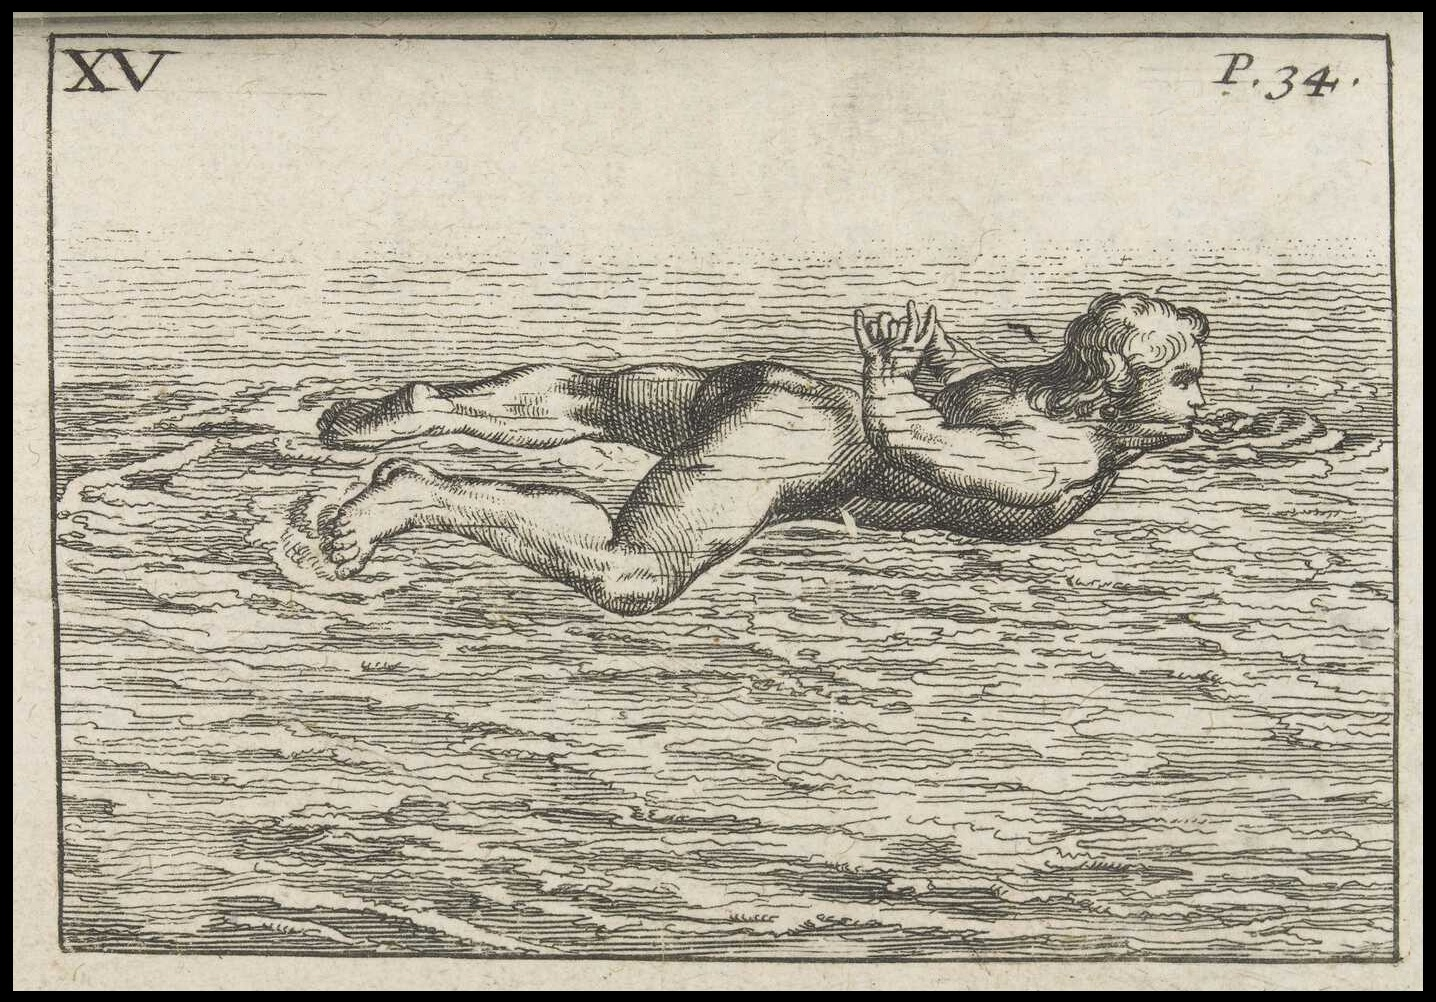 early modern swimming manual - technique illustration